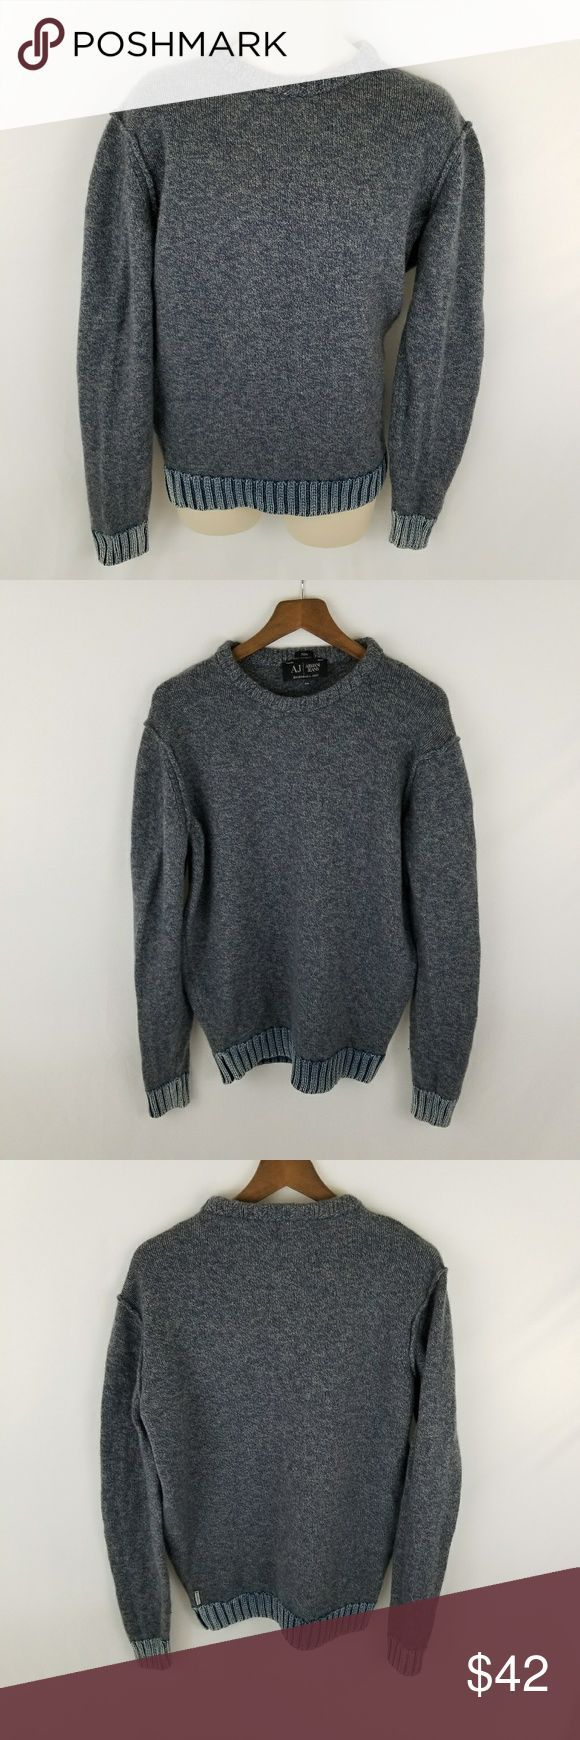 """Armani jeans men's size 3XL slim sweater Armani Jeans AJ Mens Size 3XL Slim Blue Crew Neck Wool Sweater 100% Authentic  Preowned   80% Lana Wool 20% Poliammide   Armpit to Armpit - 23.5""""  Length - 28.5"""" Armani Jeans Sweaters Crewneck"""